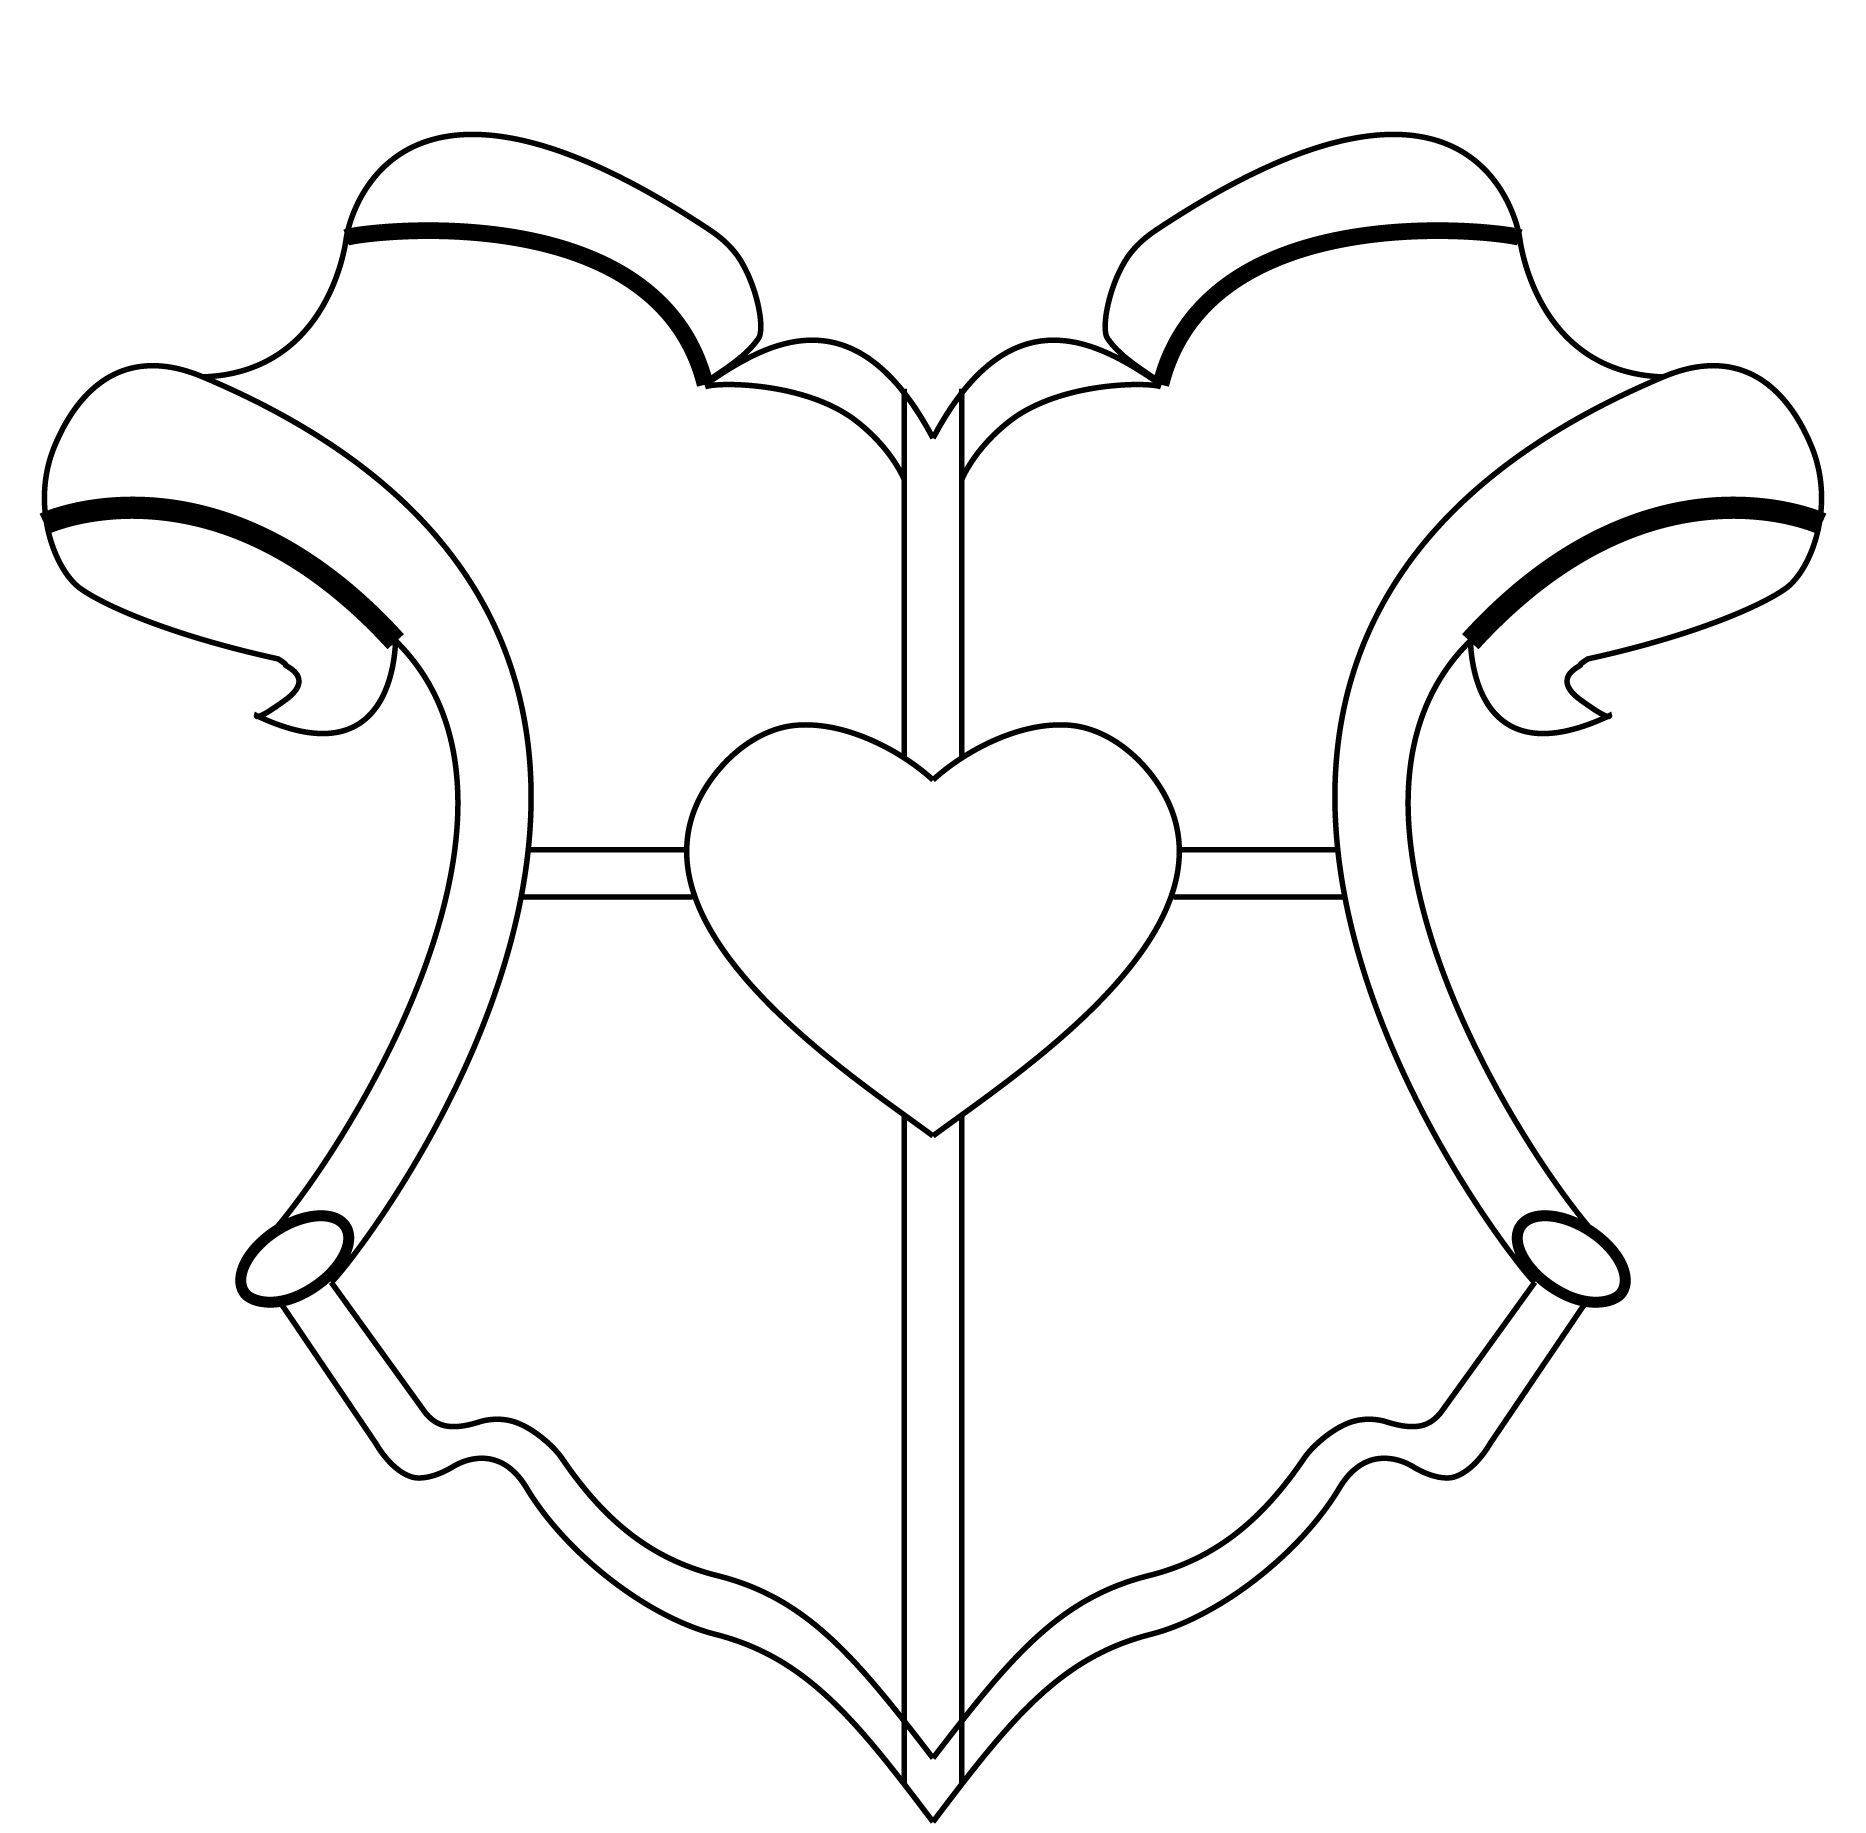 Blank Family Crest Template - Cliparts.co | Library Media Specialist | Printable Coat Of Arms Worksheet